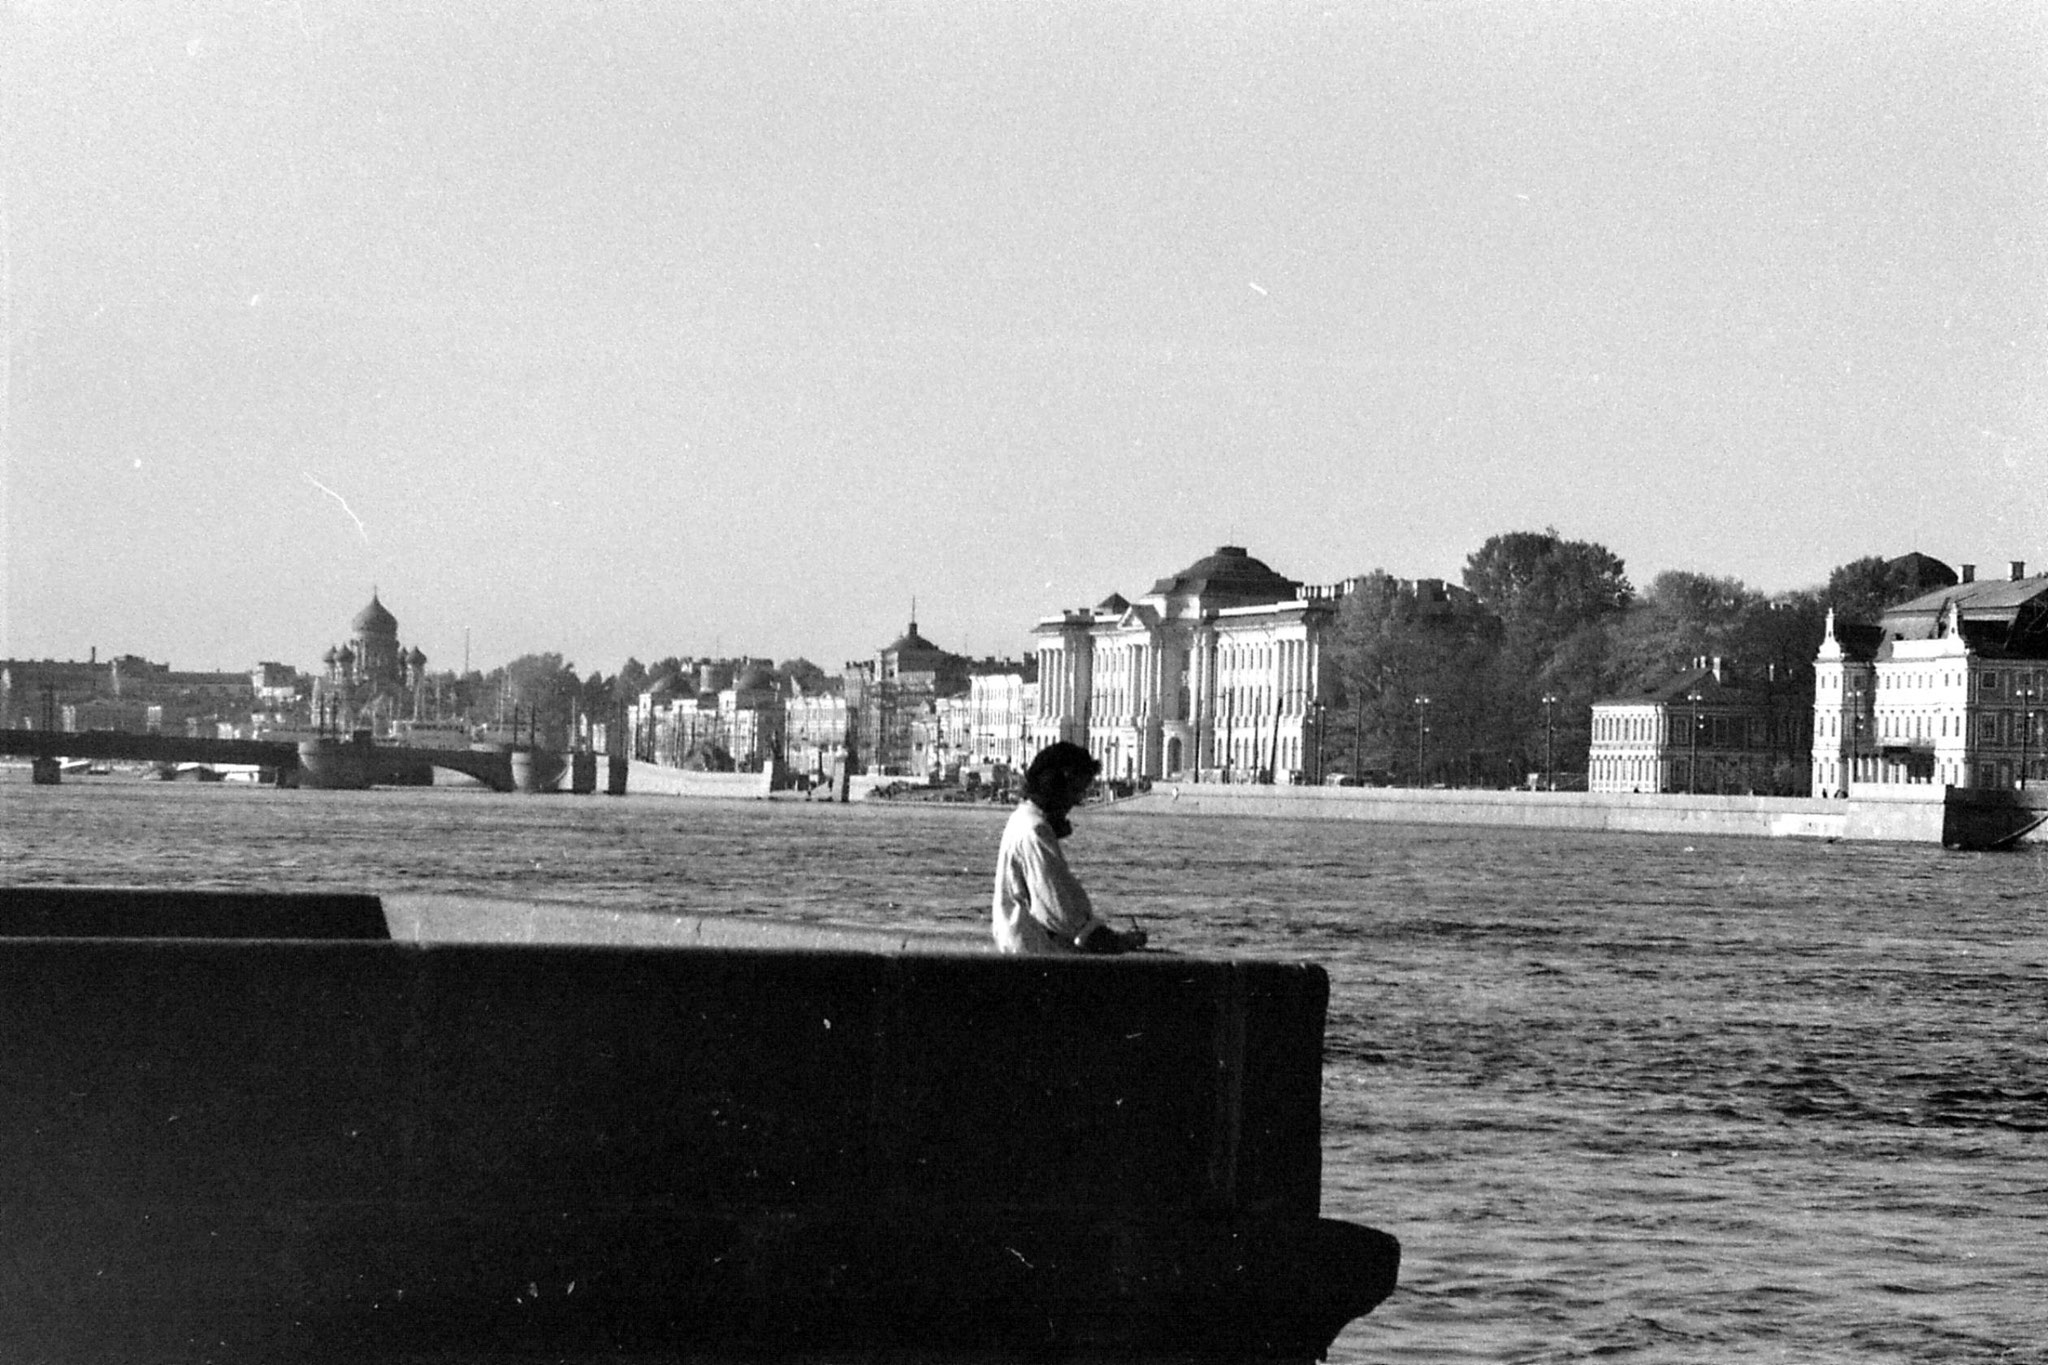 13/10/1988: 7: west along River neva